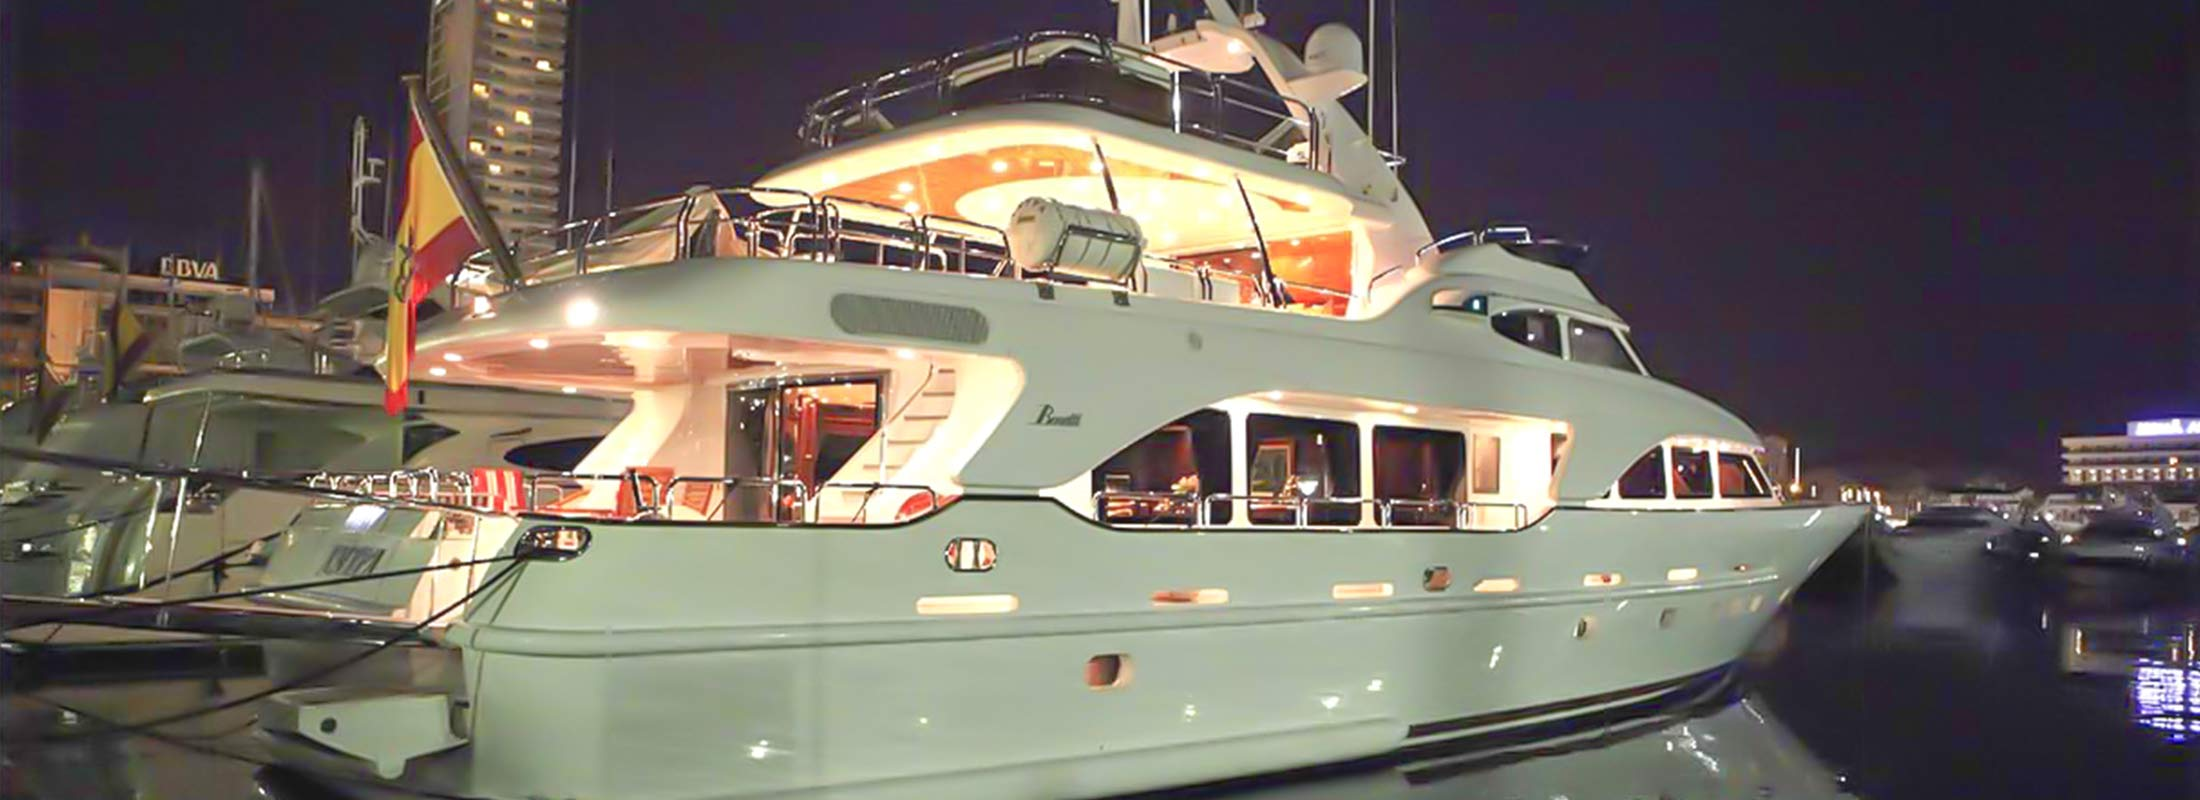 Anypa Motor Yacht for Charter Mediterranean slider 2